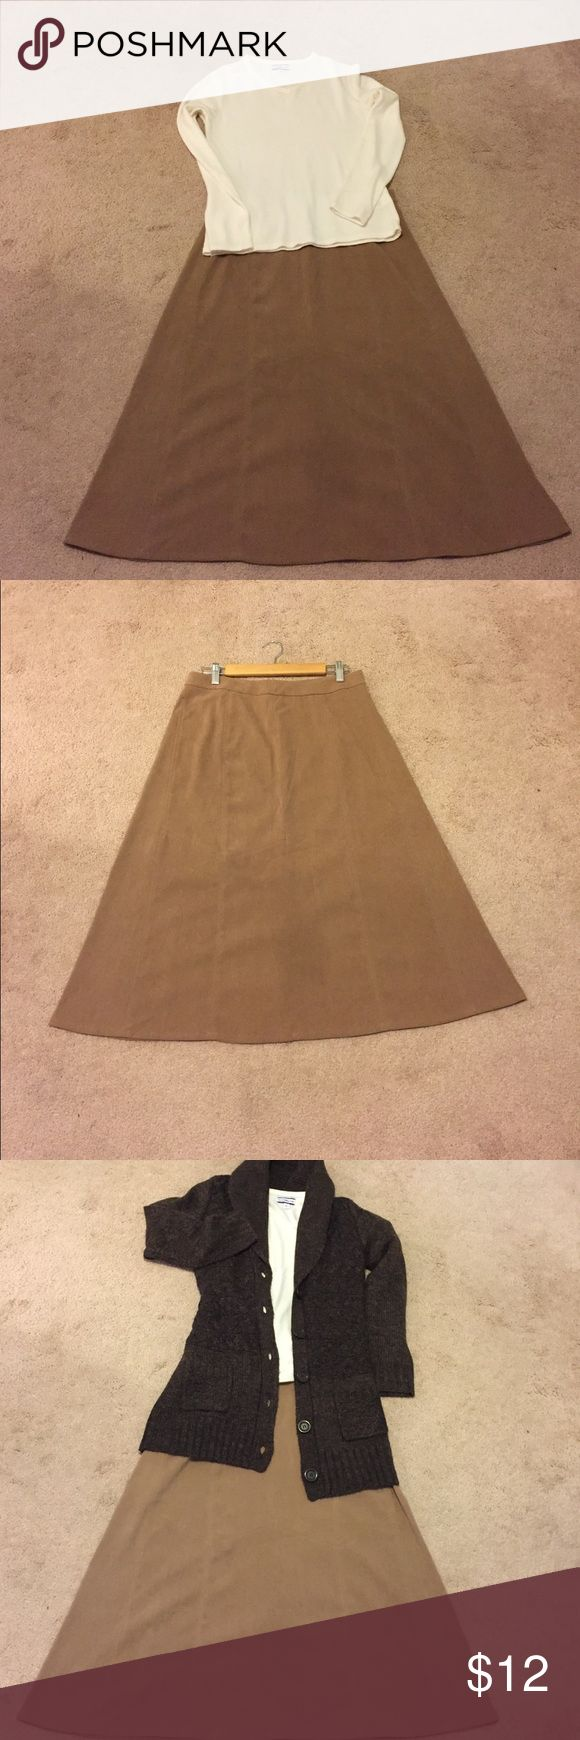 "Christopher Banks suede like A line skirt size 10 Christopher Banks suede like A line skirt size 10. Waist measures 15.5 and waist to hem measures 30"" (mid-calf) Like new!!! Perfect with heels or boots for the autumn and winter months. Christopher & Banks Skirts A-Line or Full"